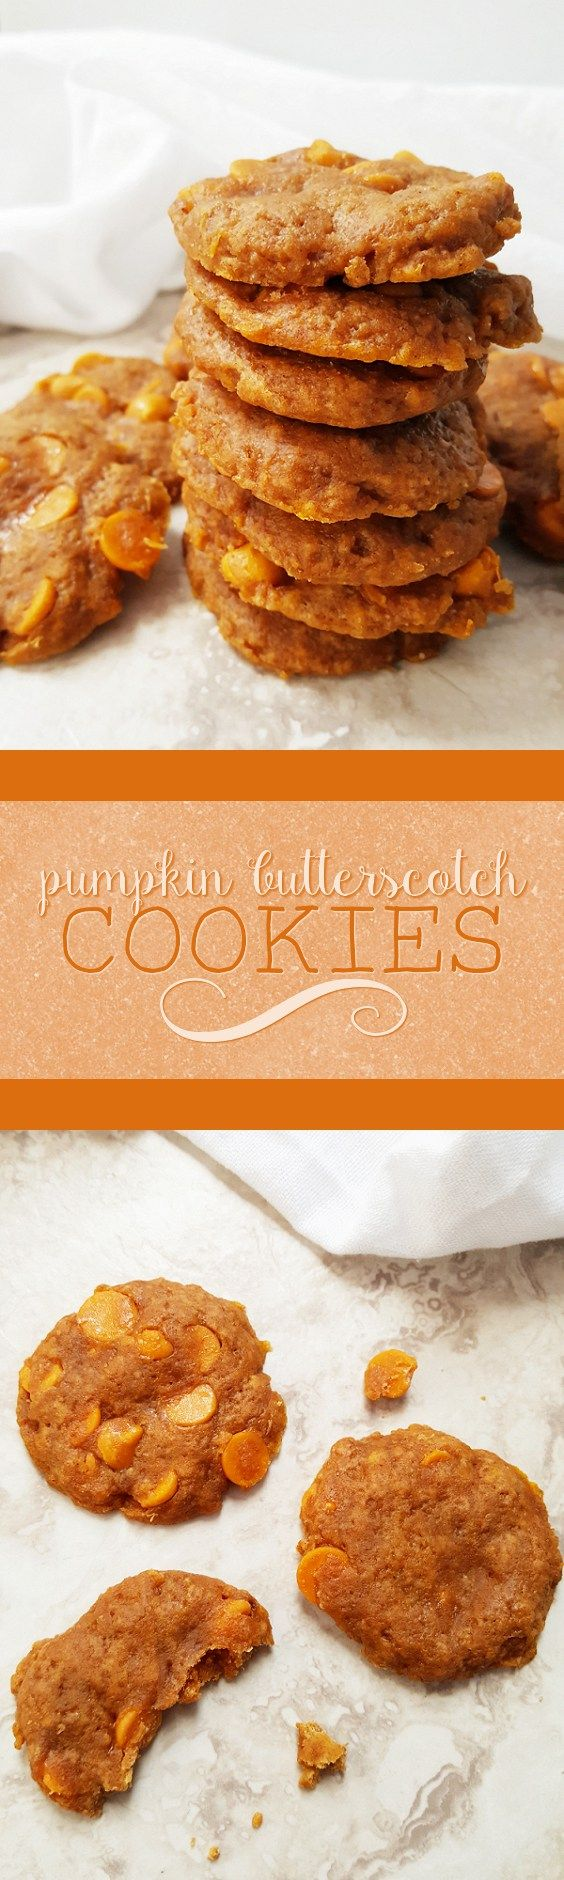 {Healthy; Low Calorie} Sweet and soft and healthy enough for breakfast, these pumpkin butterscotch cookies are perfect for any occasion!